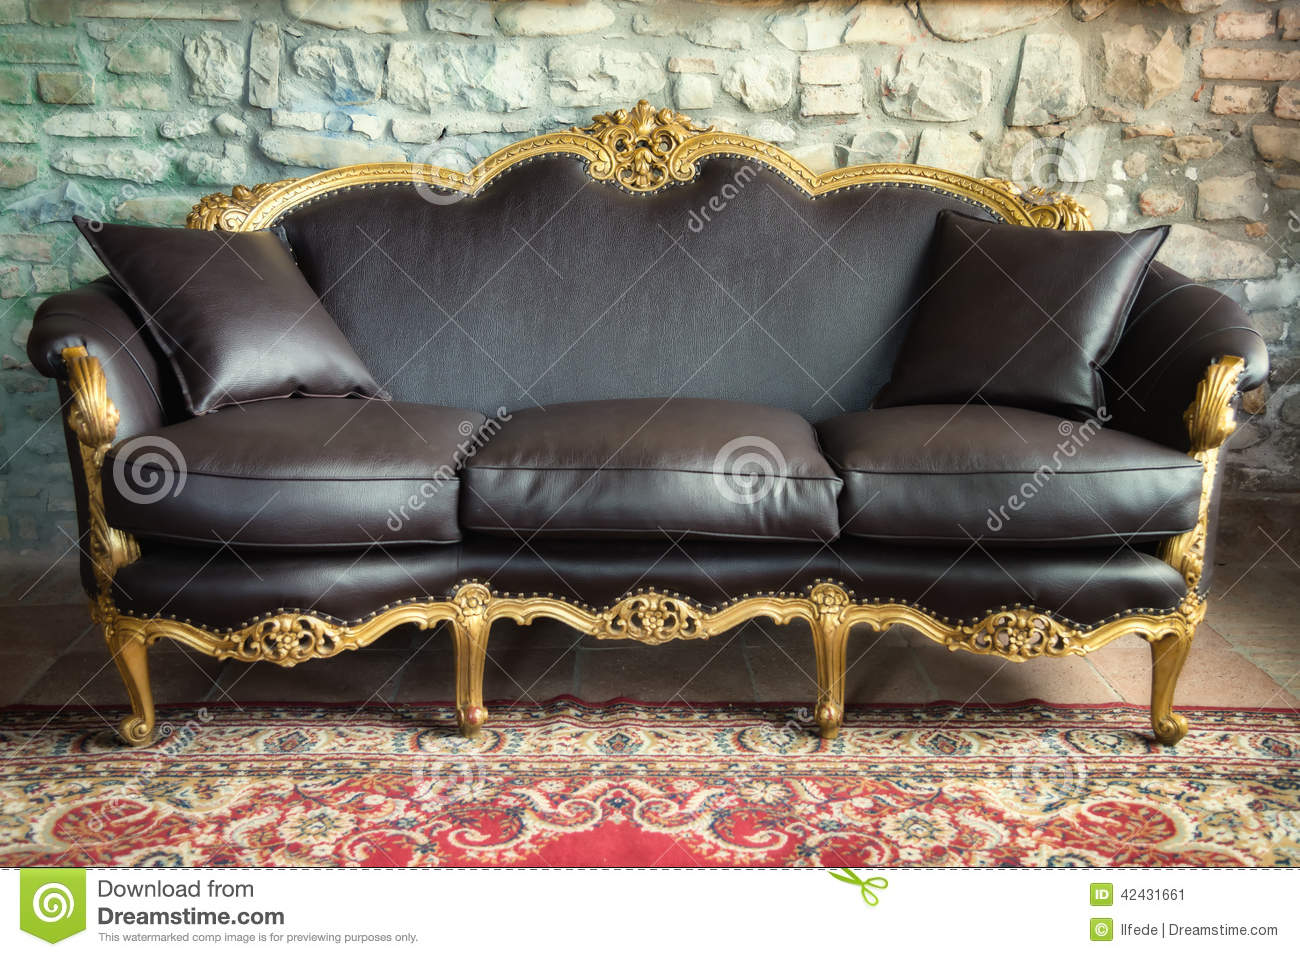 Download Old Style Sofa Stock Image. Image Of Upholstery, Design   42431661